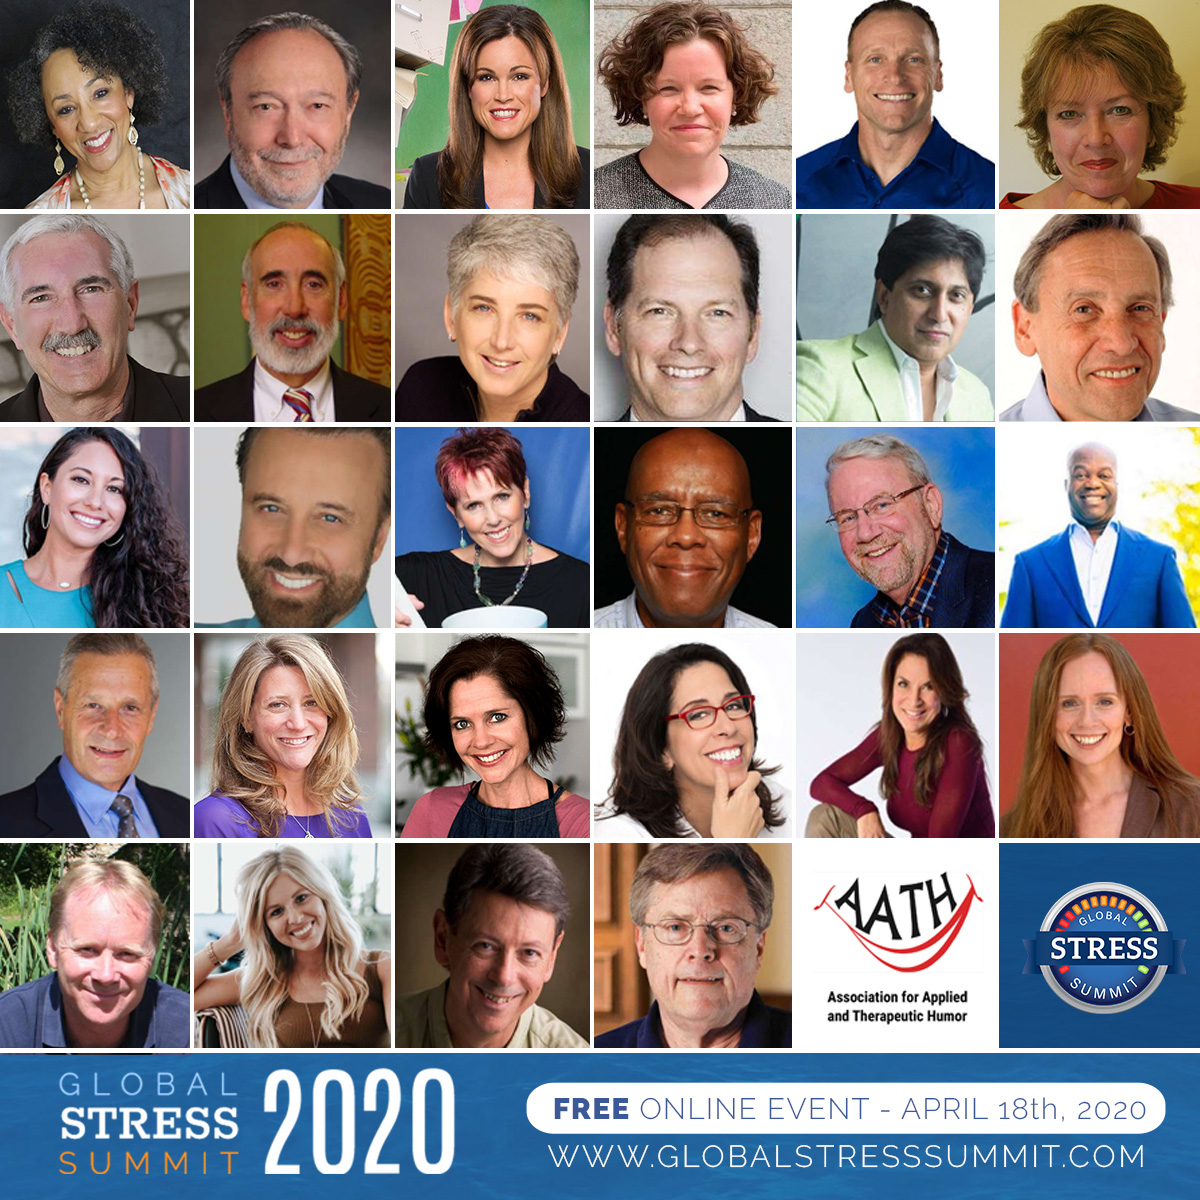 """Excited to be part of the Global Stress Summit 2020 presenting on """"Healing Racial Stress and Intergenerational Trauma""""! The FREE event is LIVE ONLINE April 18-19! https://t.co/8utz7QqTMq #stress #stressmanagement #resilience #racialstress #racialtrauma #healing #soulfulness https://t.co/KpqBhonYcj"""